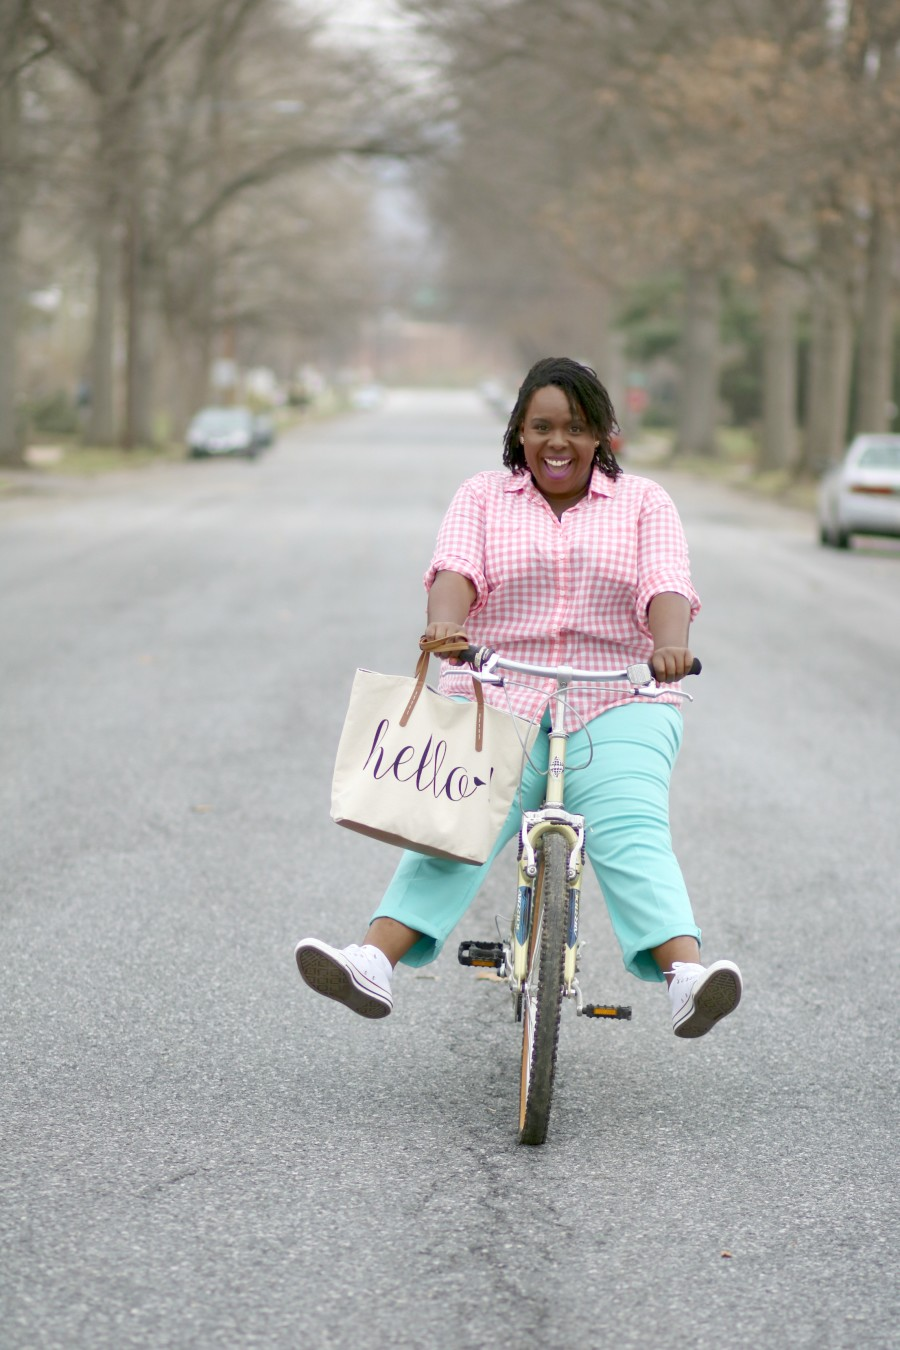 Kohl's Bicycle March 2016